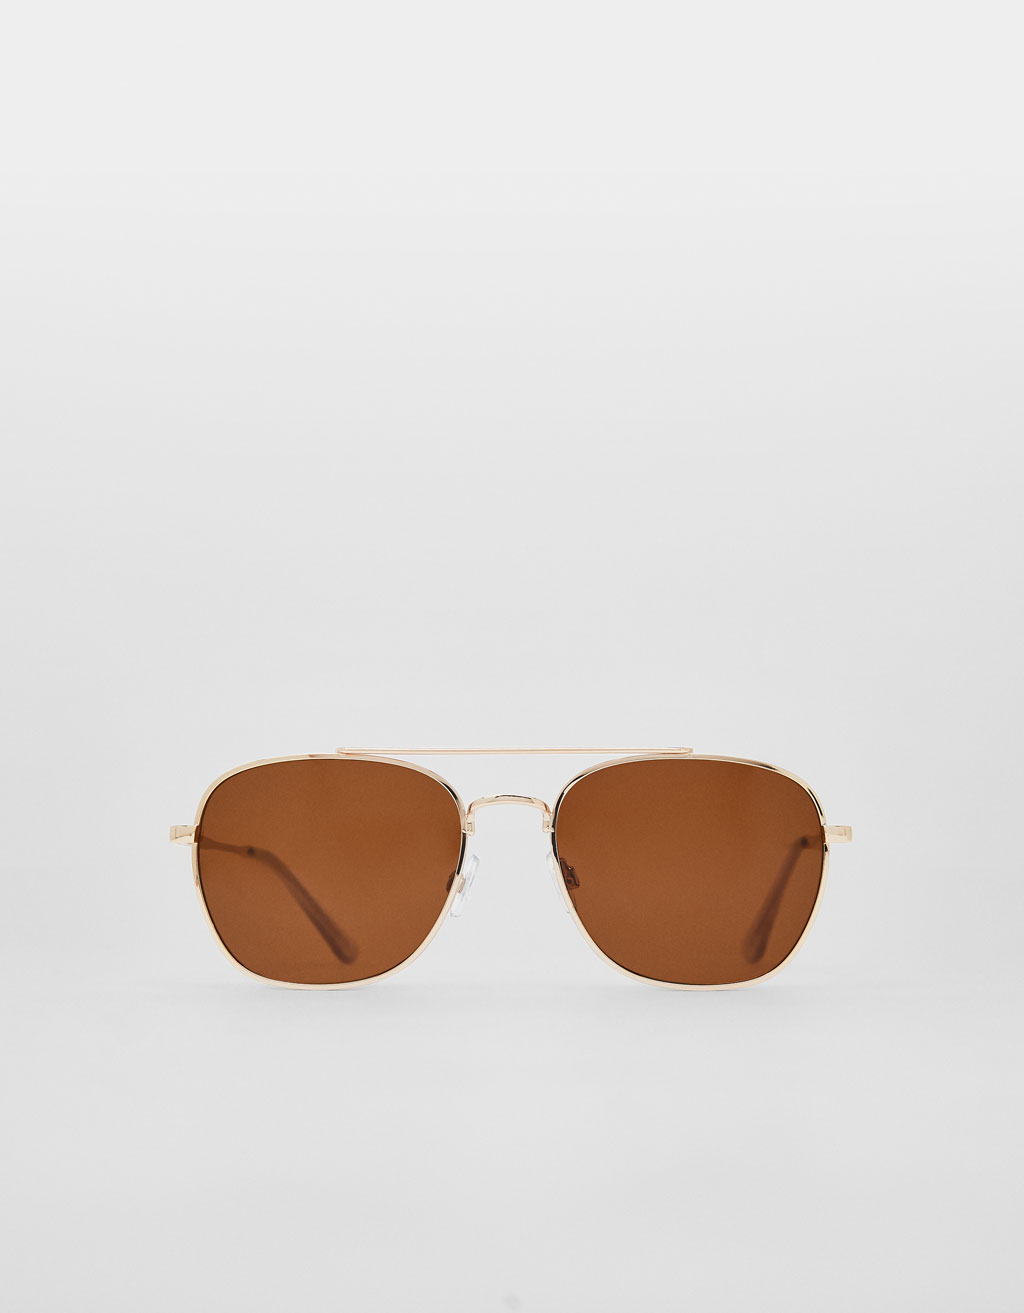 Sunglasses with smoky lenses